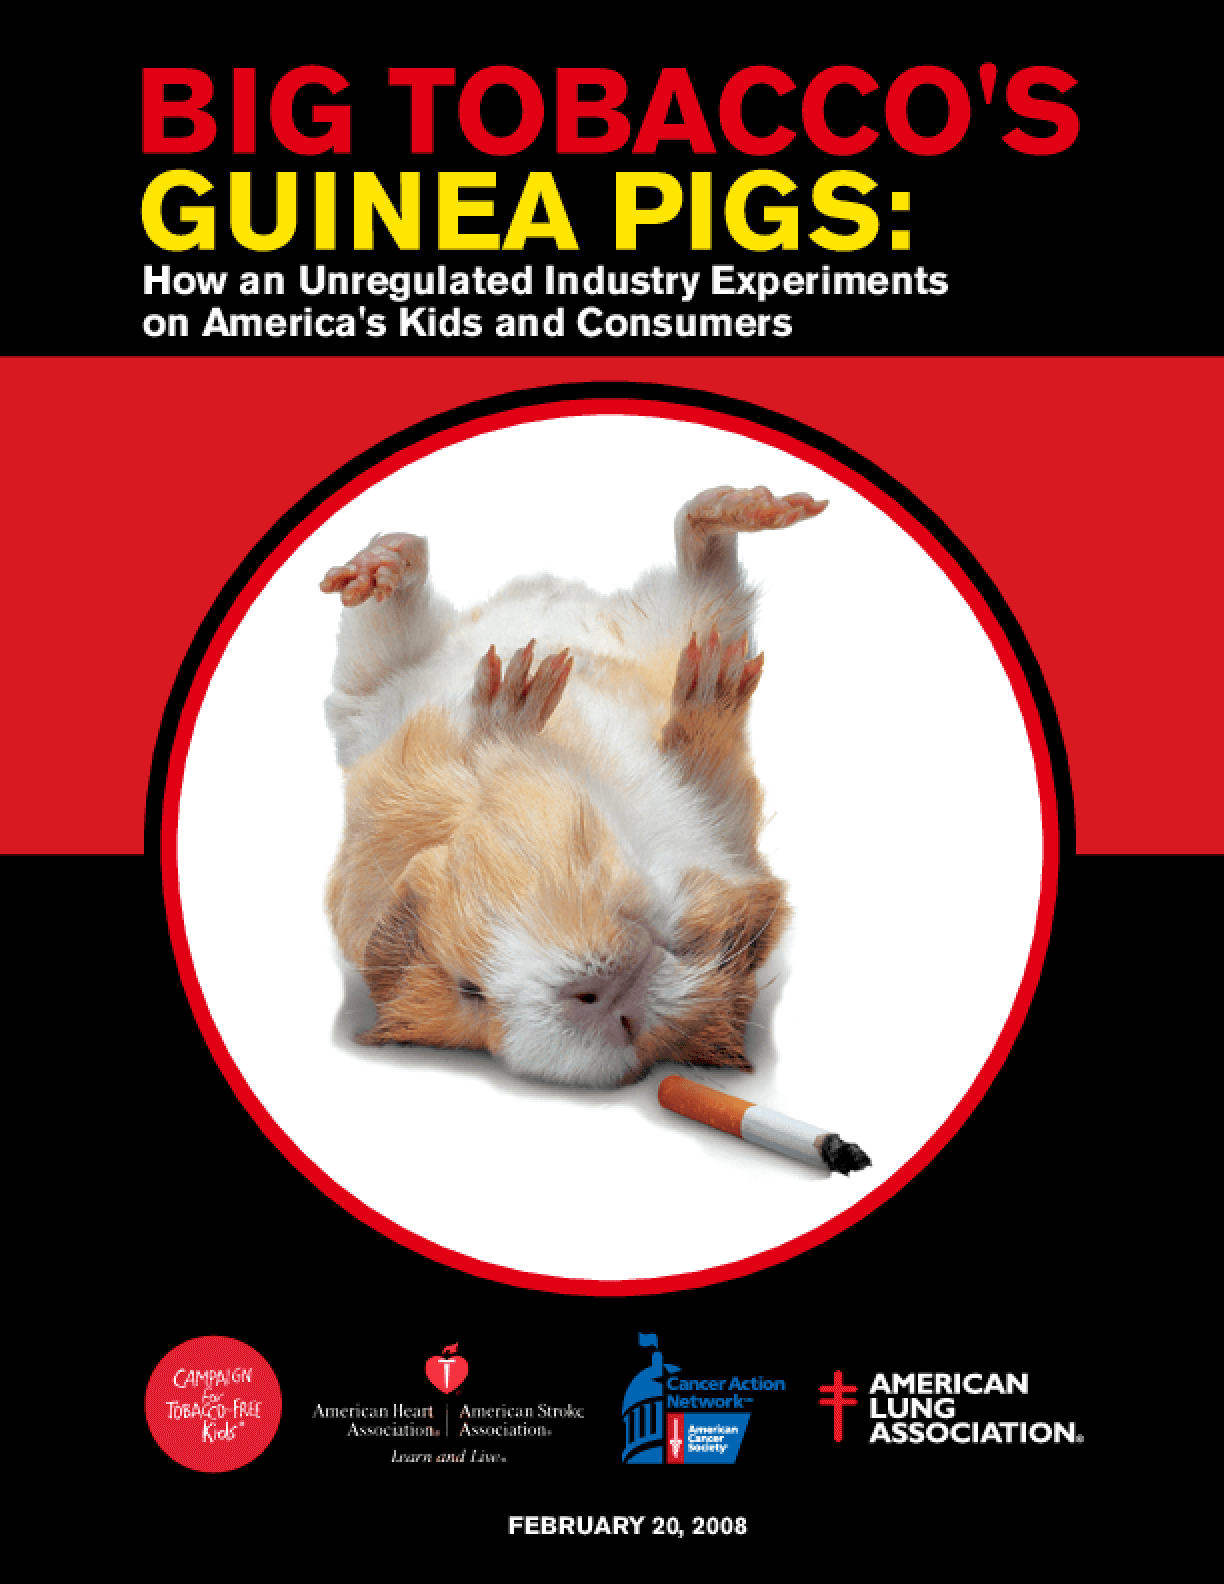 Big Tobacco's Guinea Pigs: How an Unregulated Industry Experiments on America's Kids and Consumers